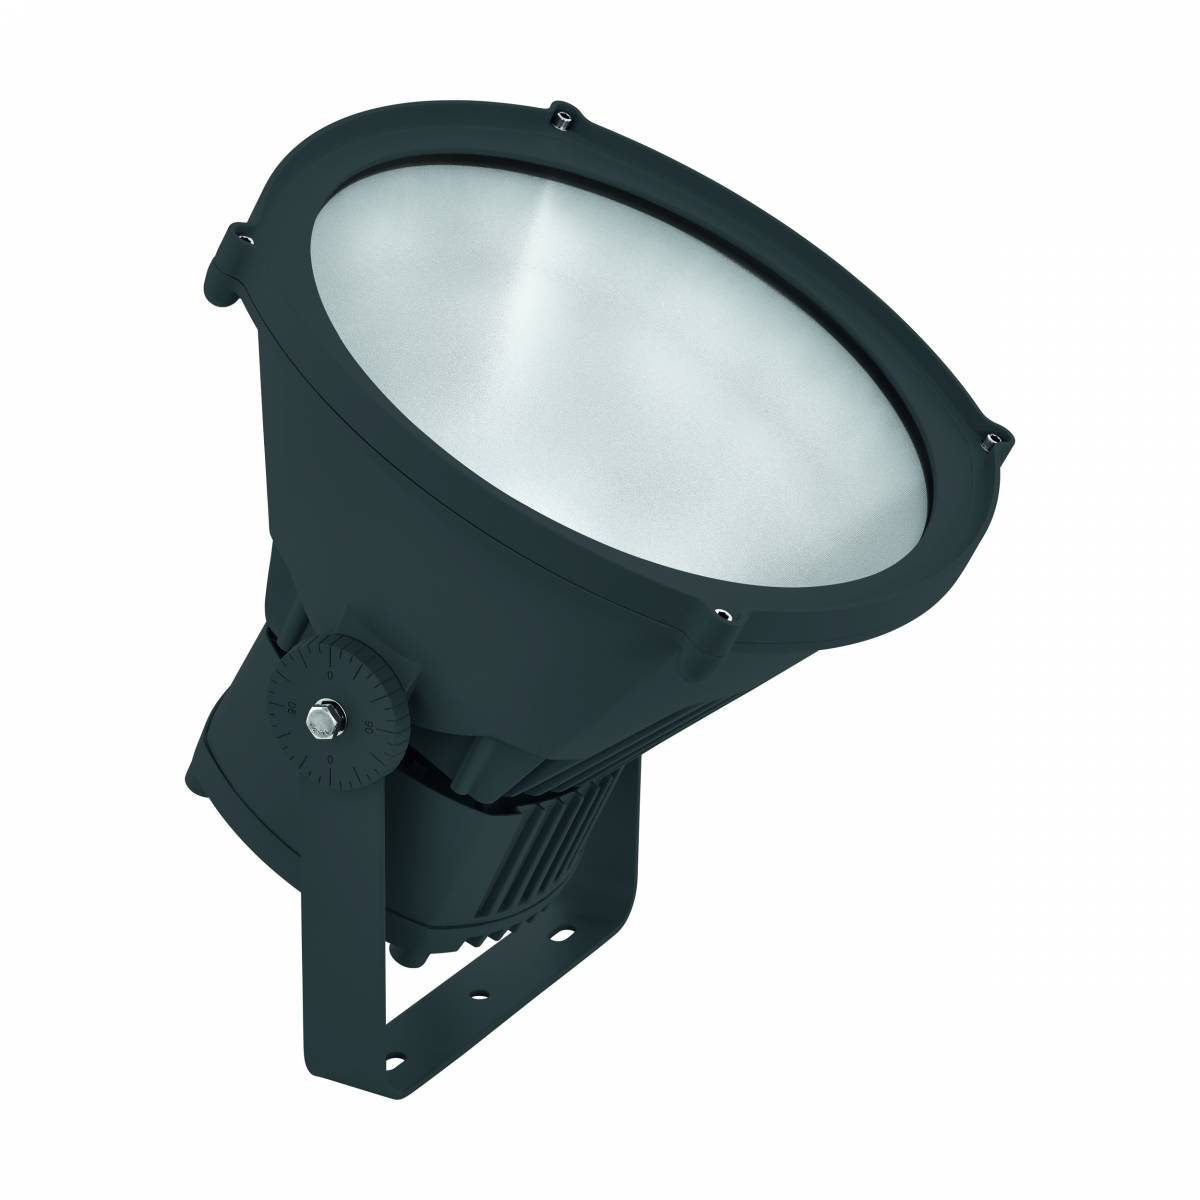 Capano 70W 6500K 6700lm anthracite (RAL7016) IP65